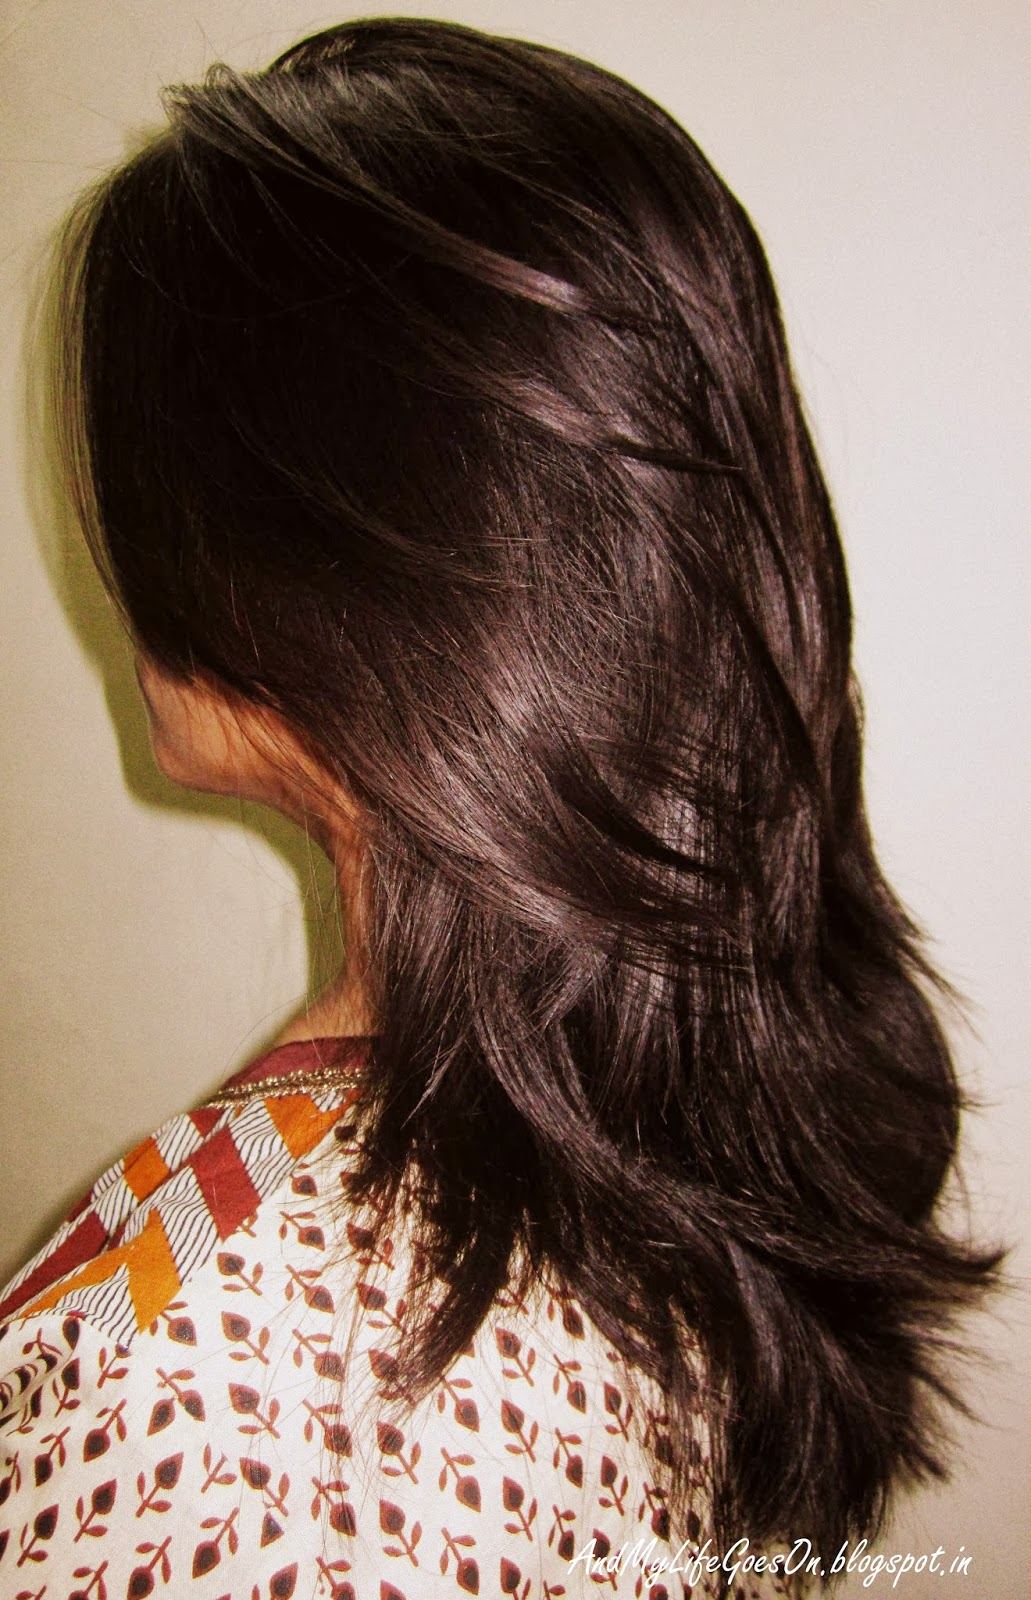 Debora Hair Style 12: Layer Cut For Curly Hair Indian